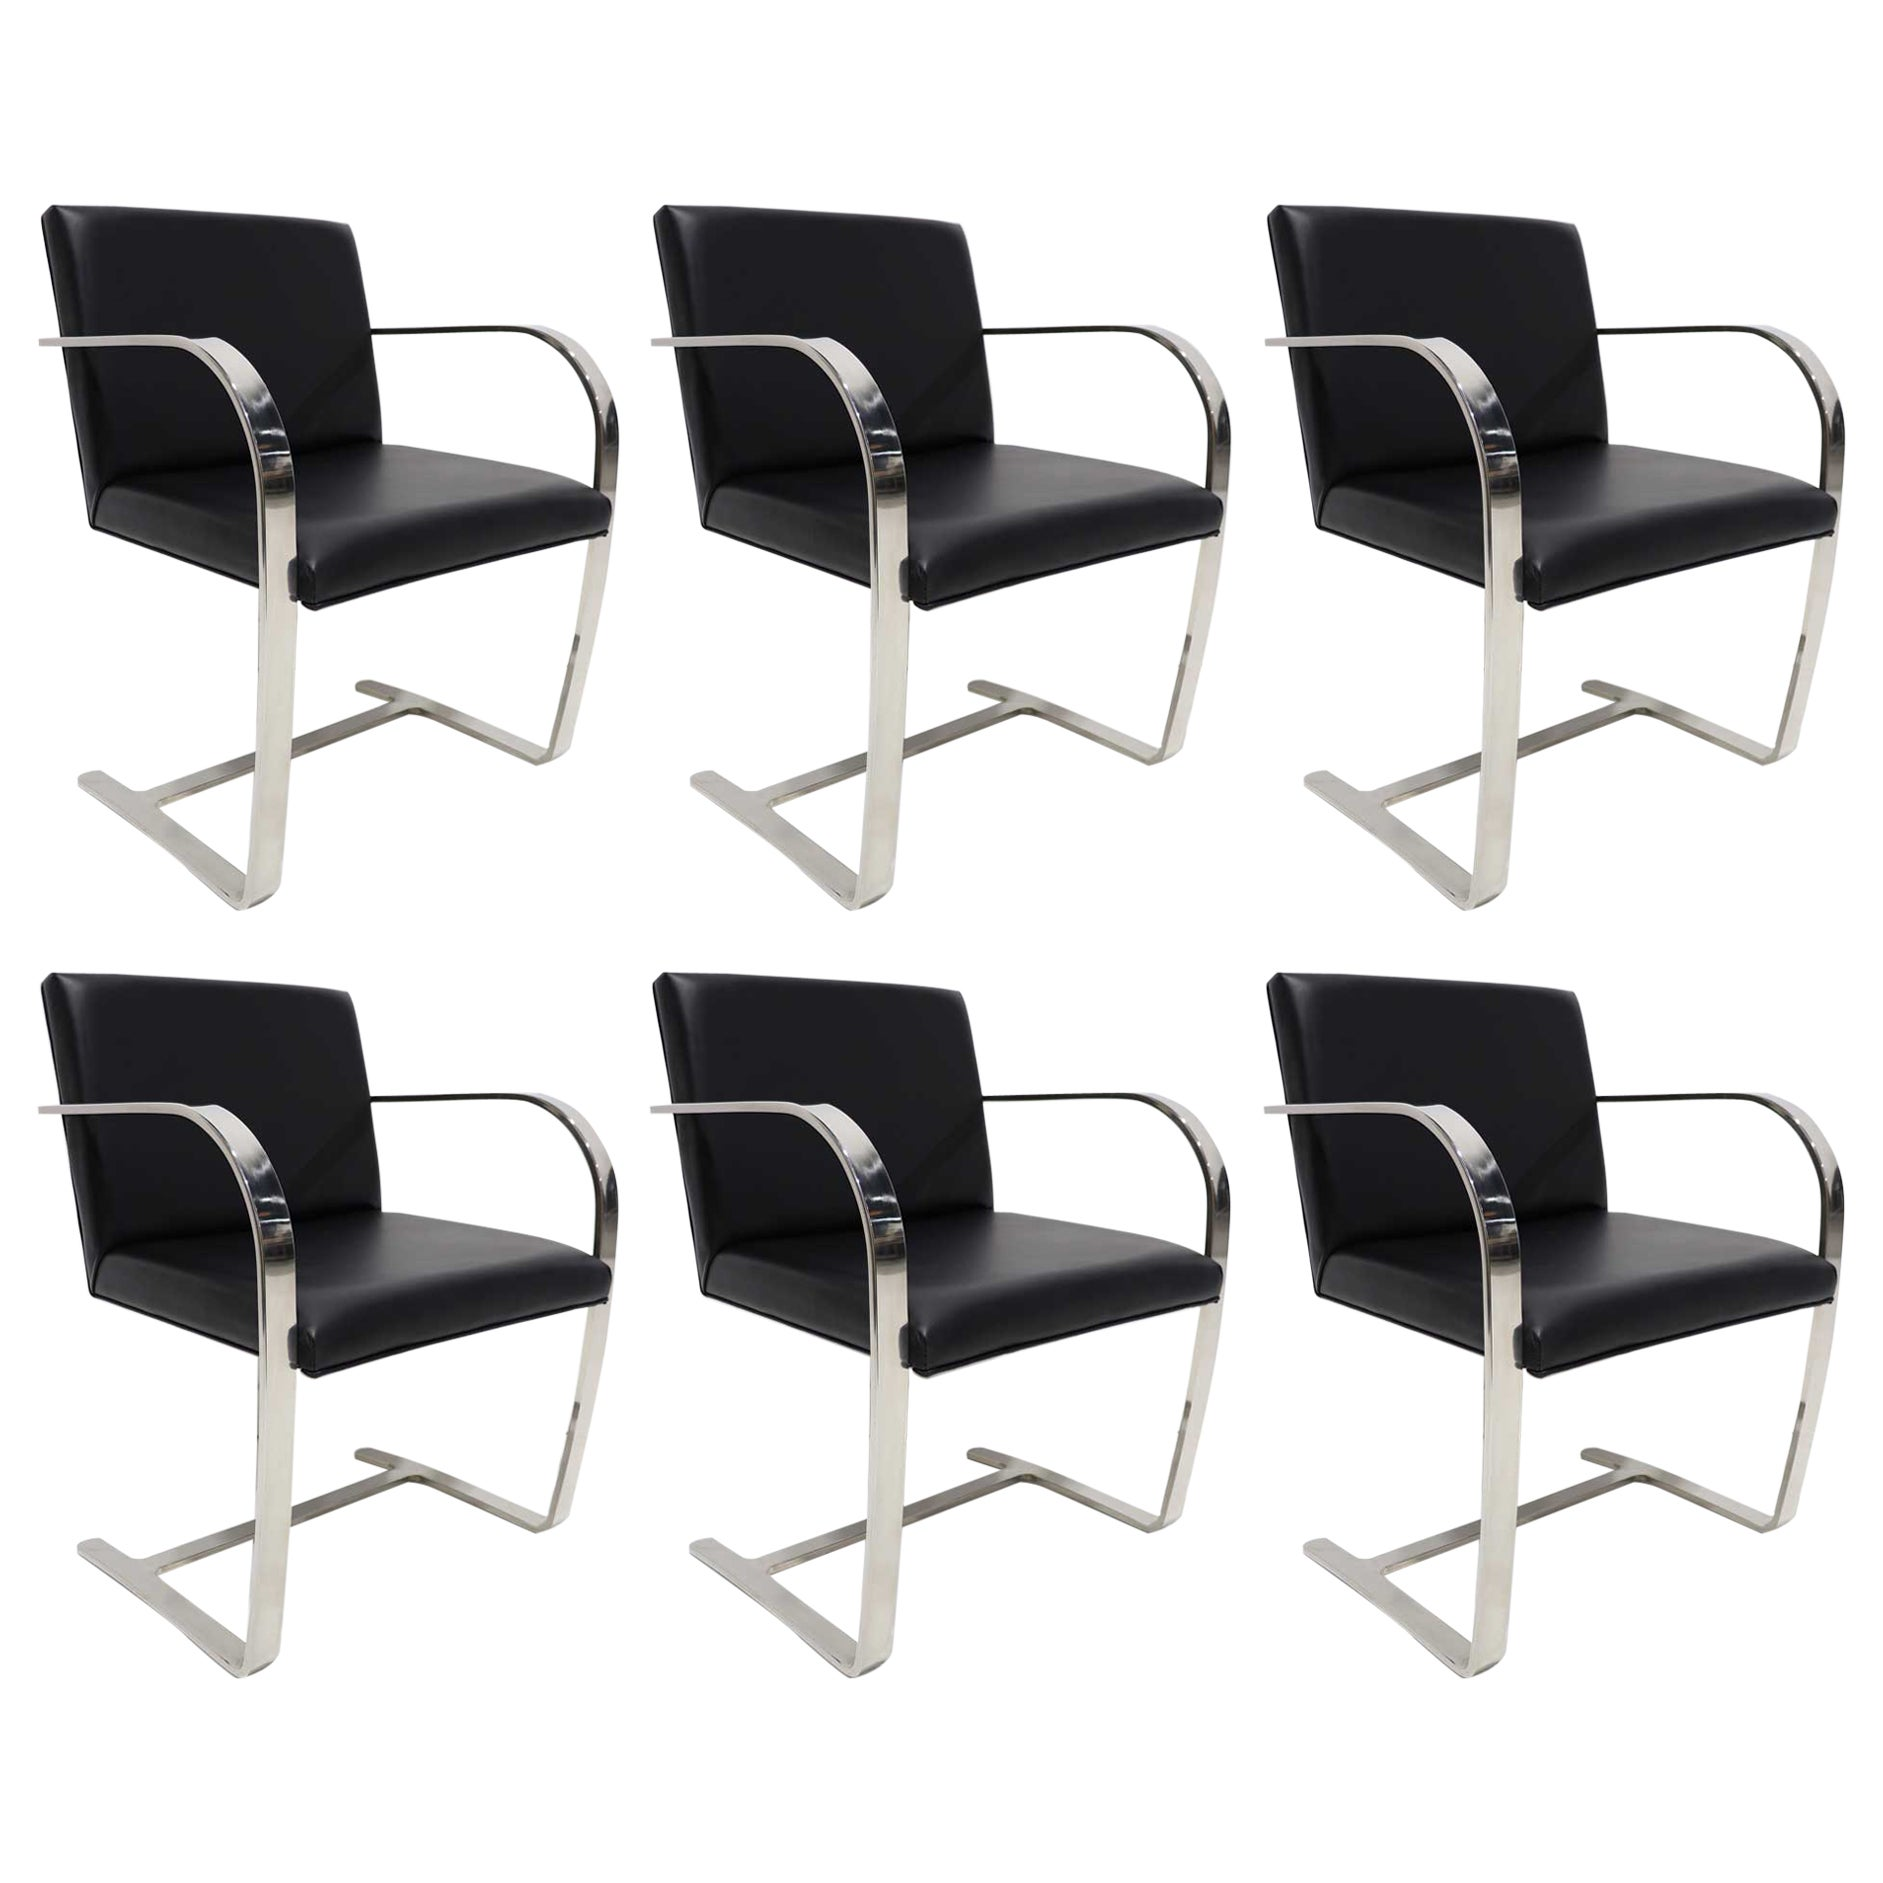 Set of Six Brno Chairs in Black Faux Leather